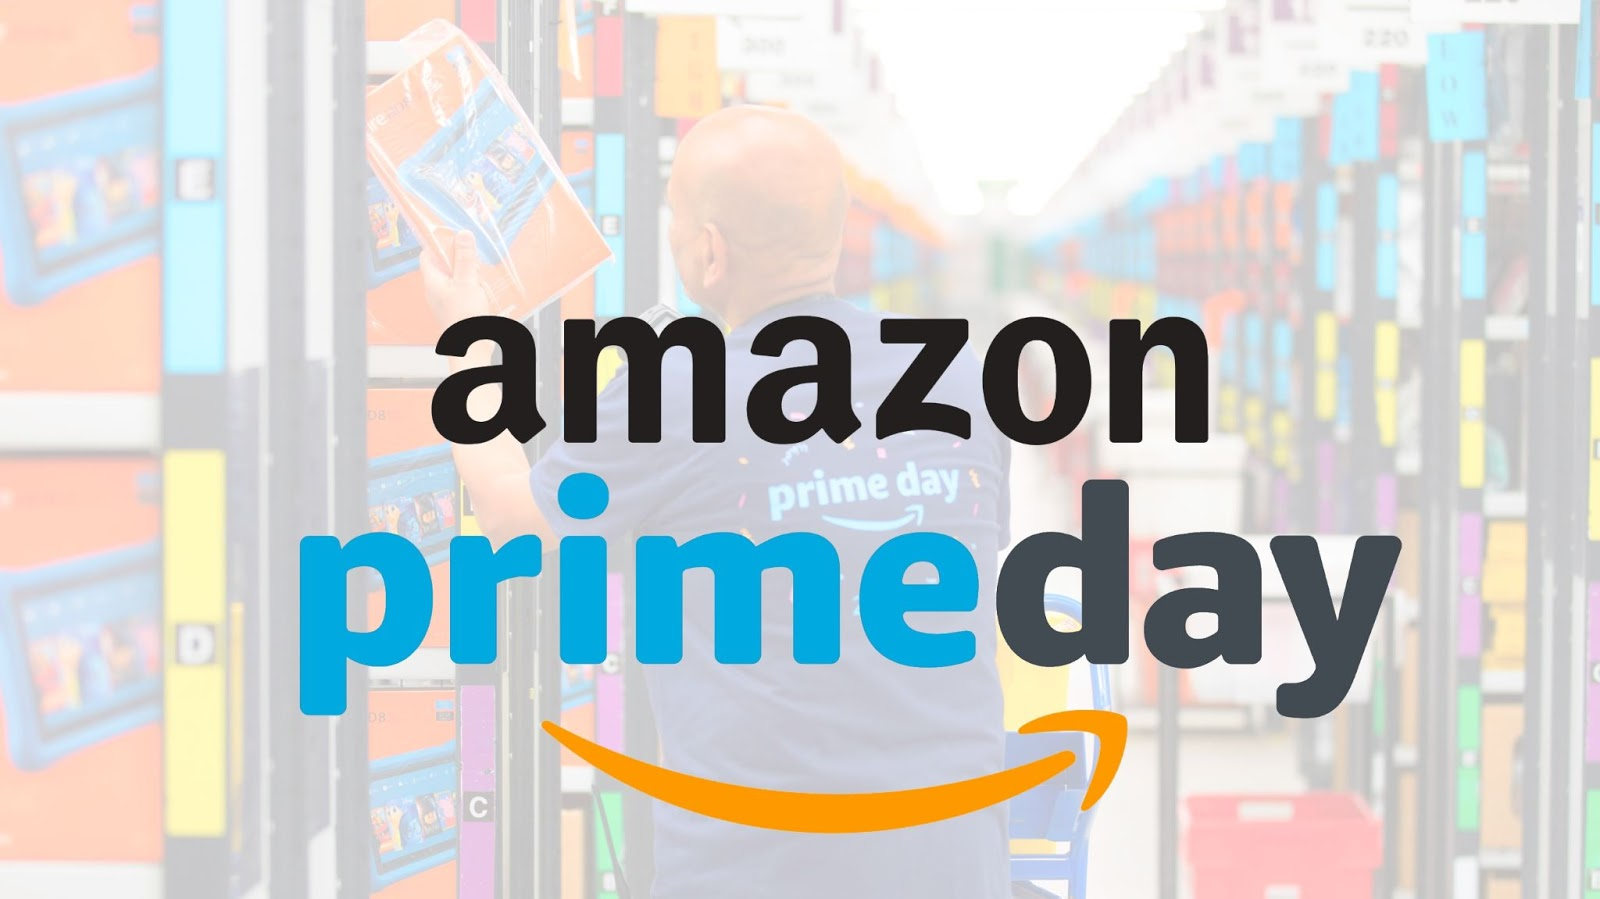 Grabbing the Best Amazon Prime Day Deals